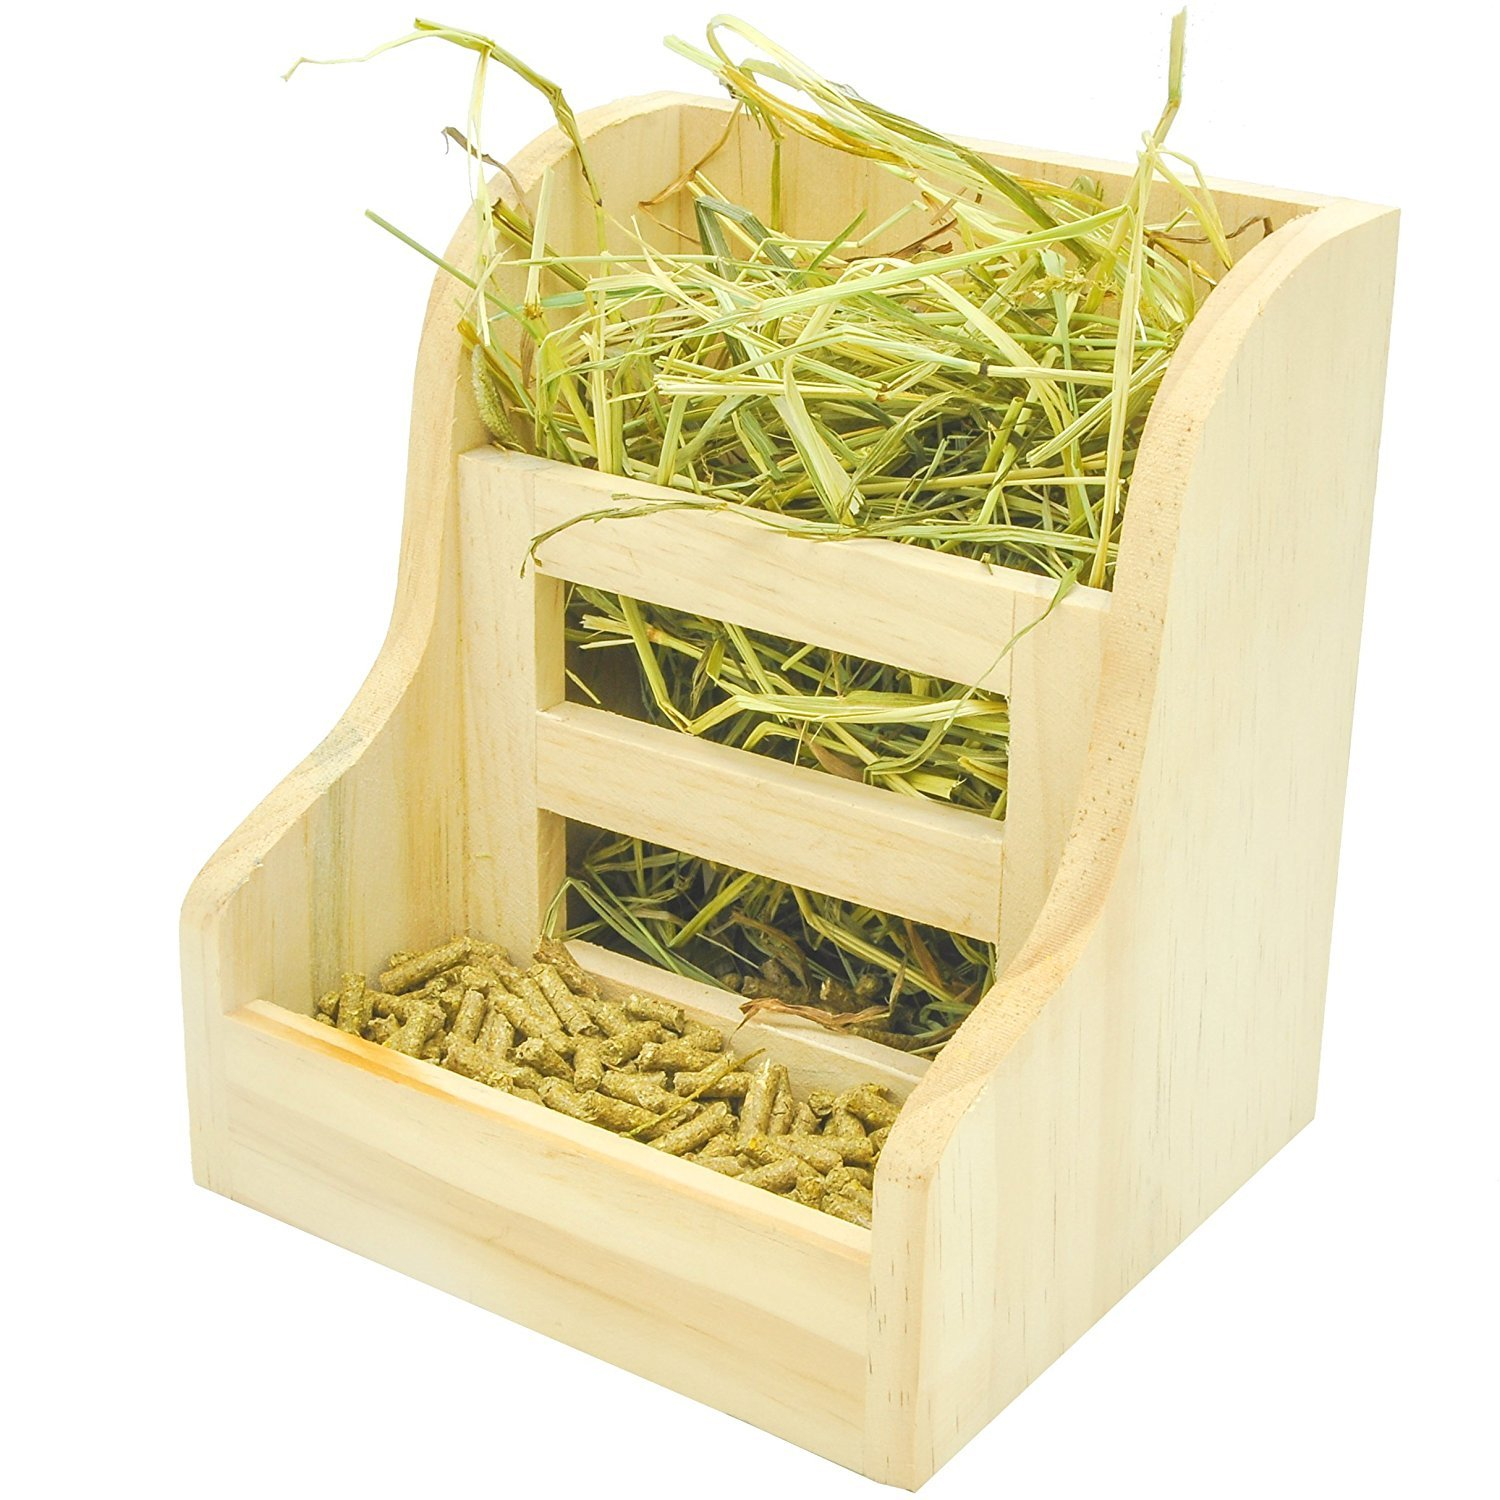 Niteangel Grass and Food Double Use Feeder, Wooden Hay Manger for Rabbits, Guinea Pigs (7'' x 6.3'' x5.8'')